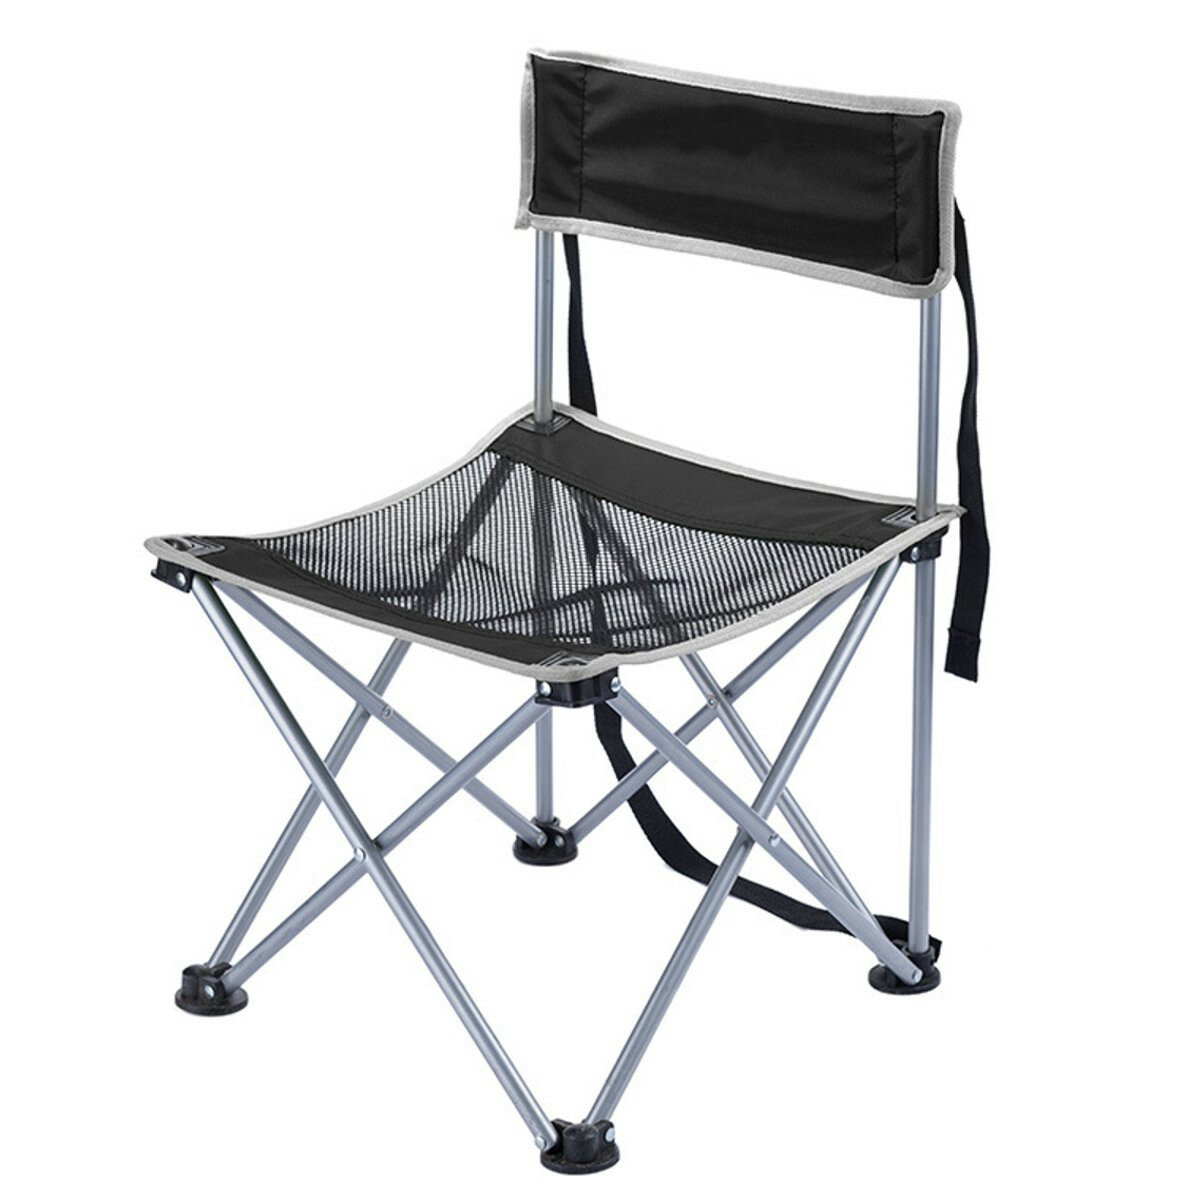 camping chair accessories black and white covers outdooors portable folding light weight fishing travel